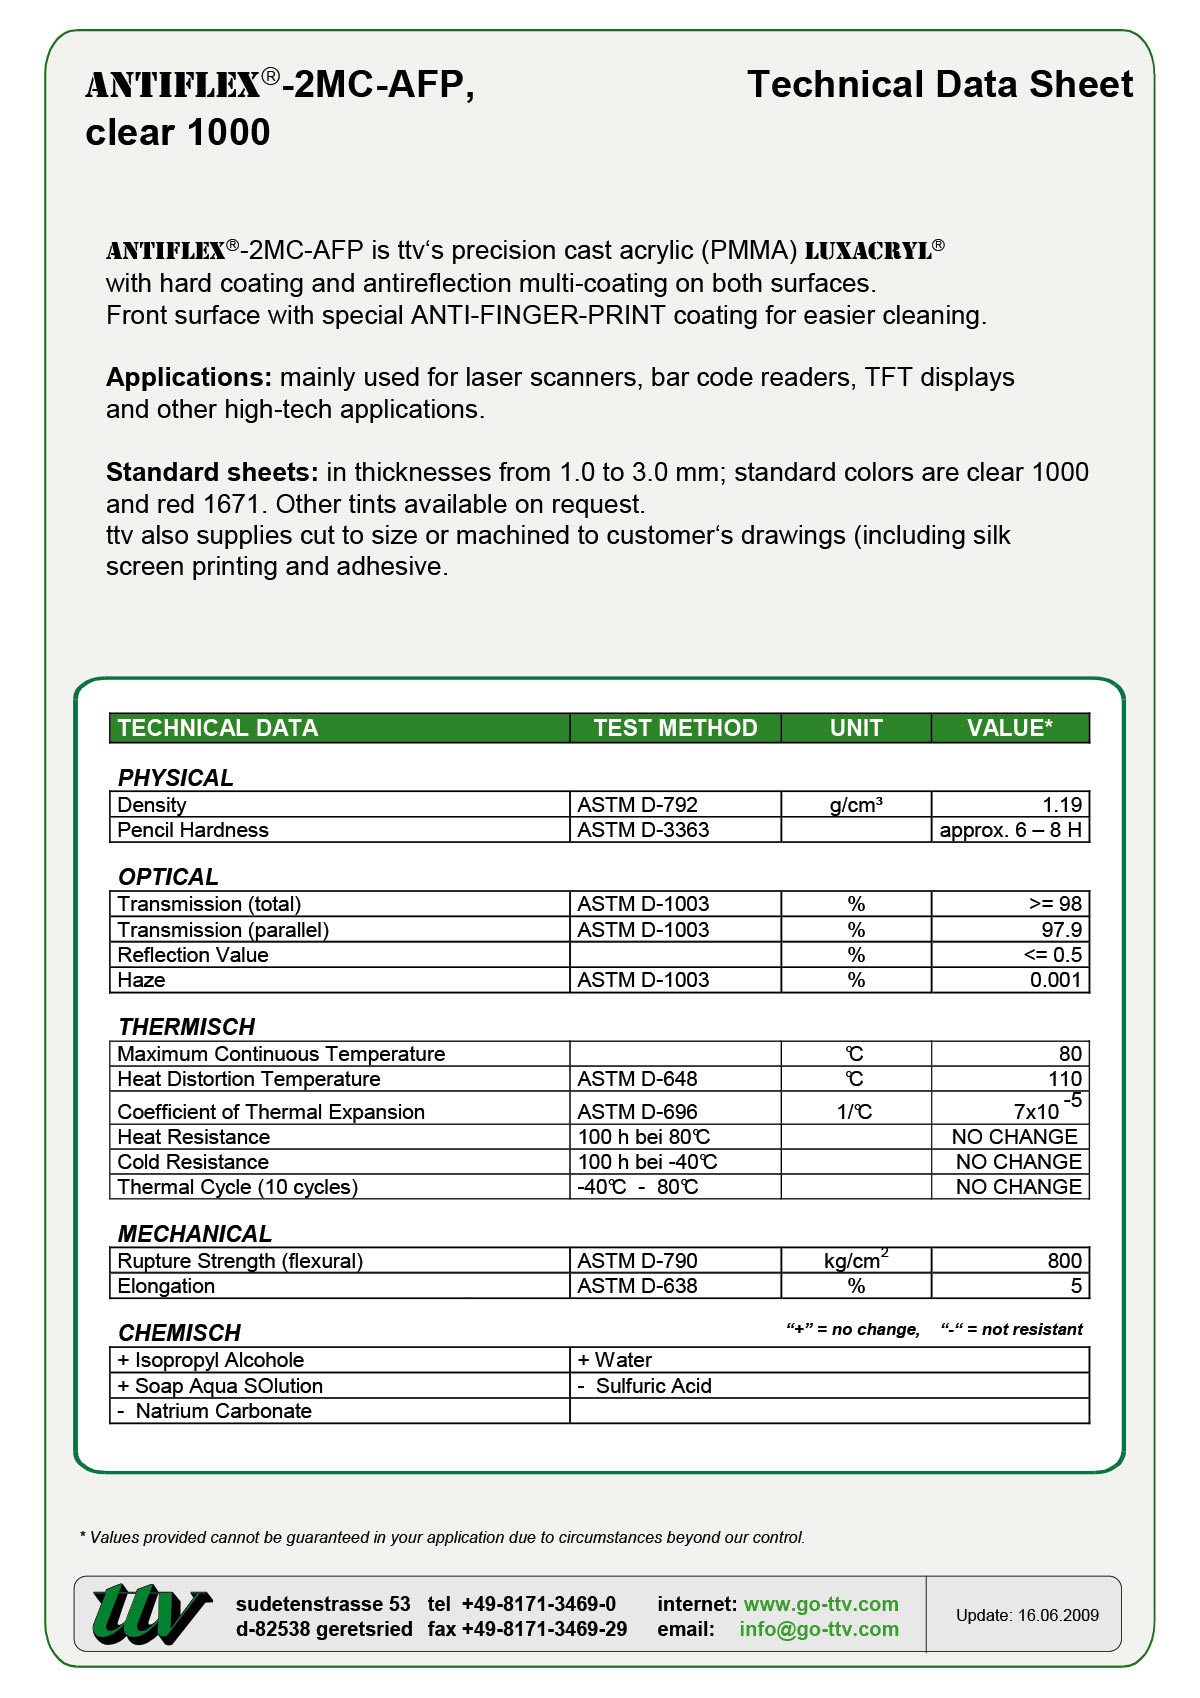 ANTIFLEX-2MC-AFP Data sheet